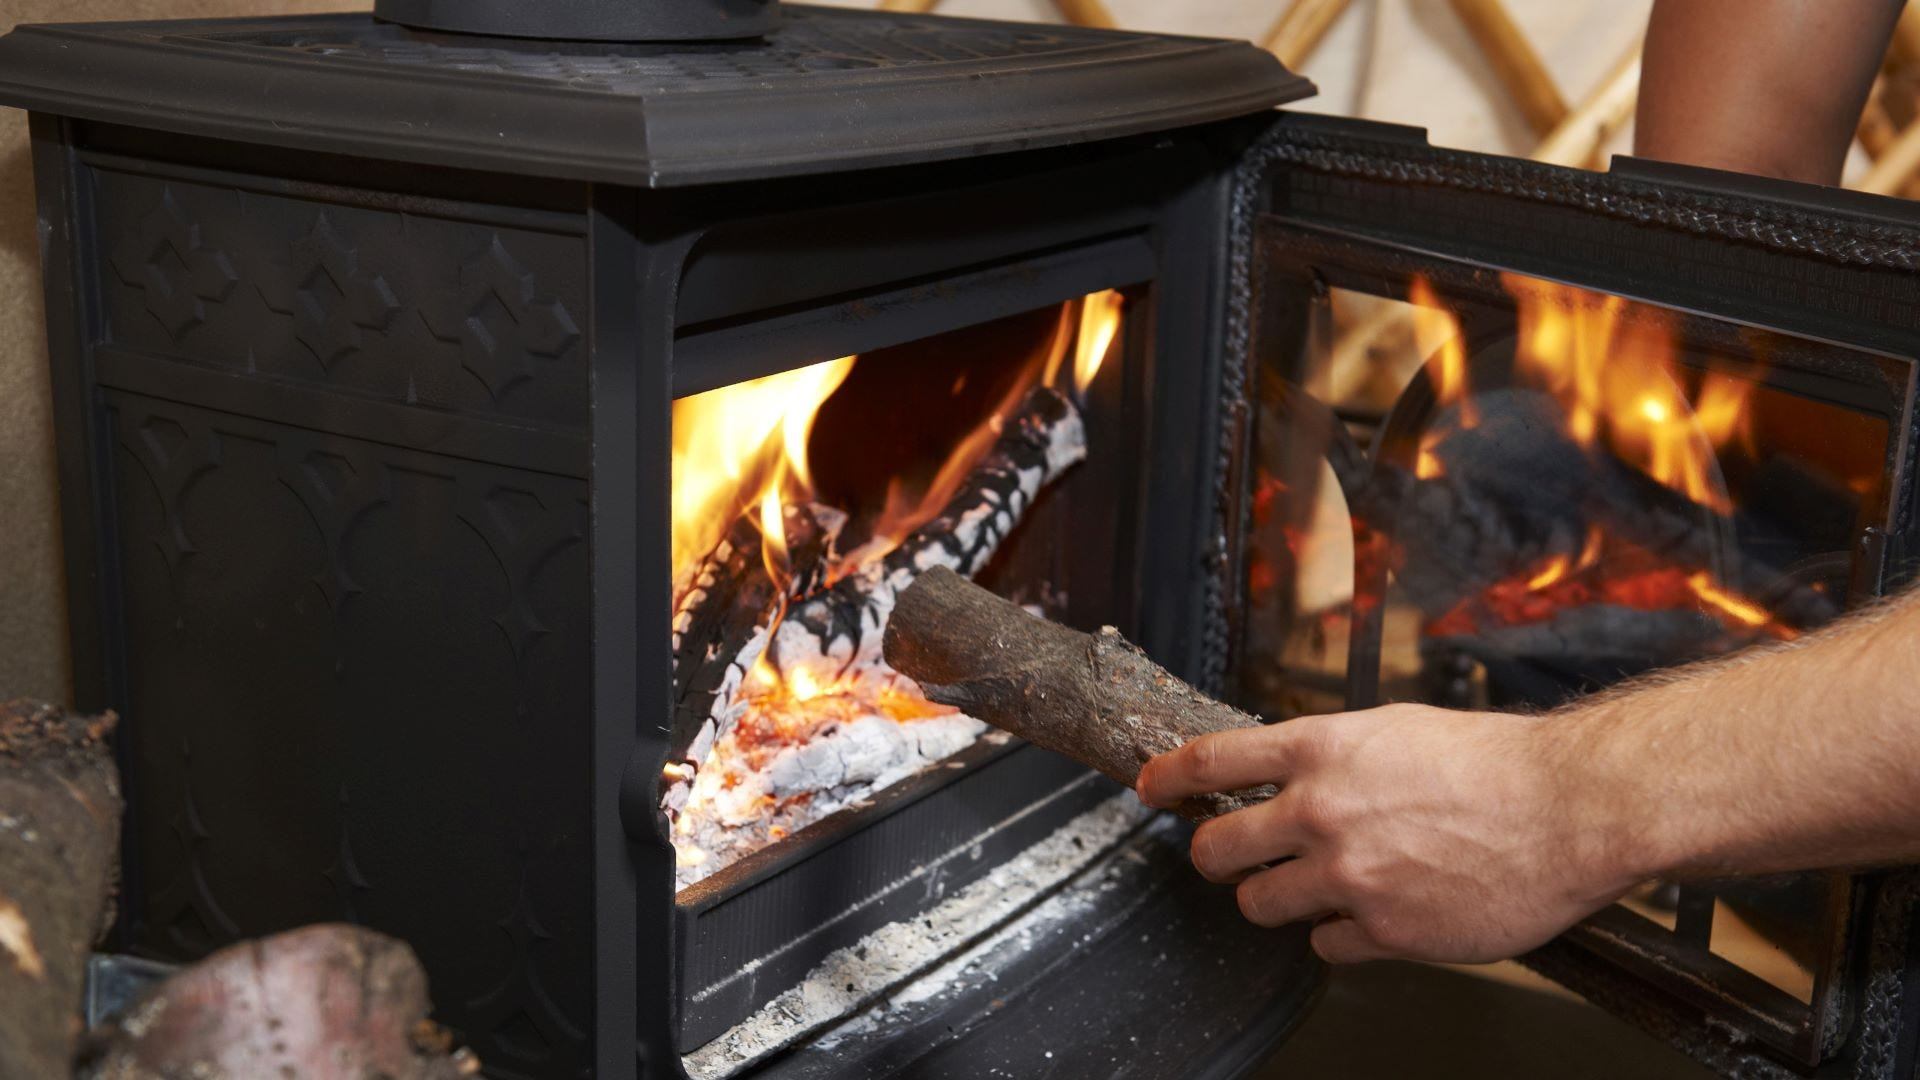 Someone putting a log in a woodburning stove.